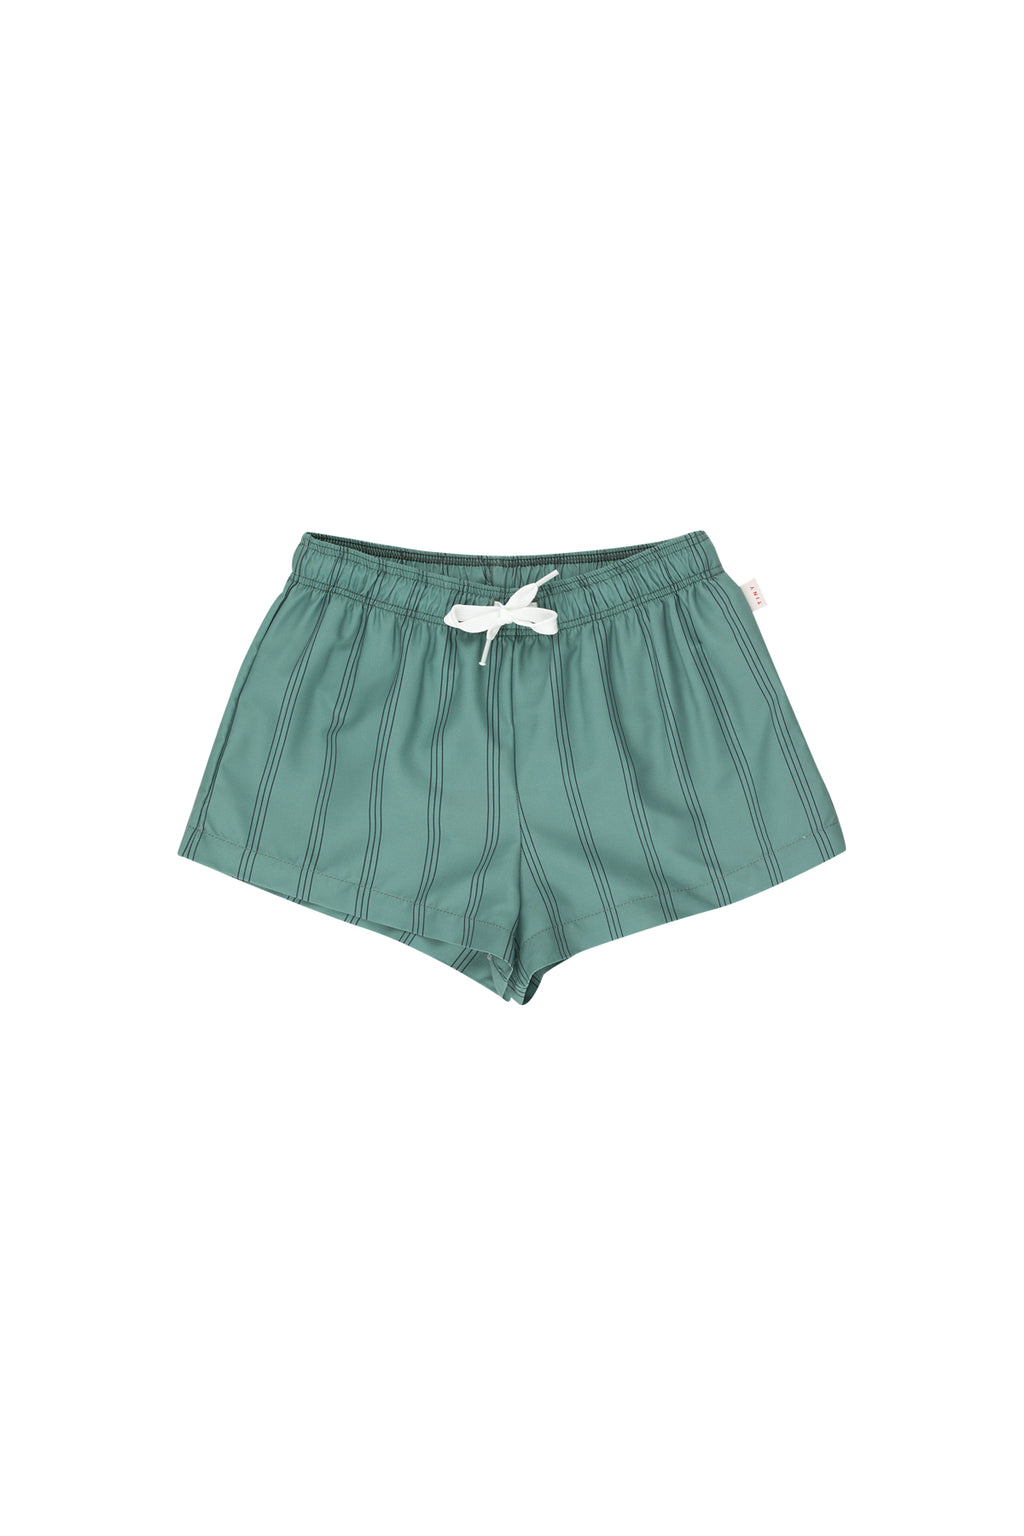 Tiny Cottons Stripes Trunks -Green/Ink Blue